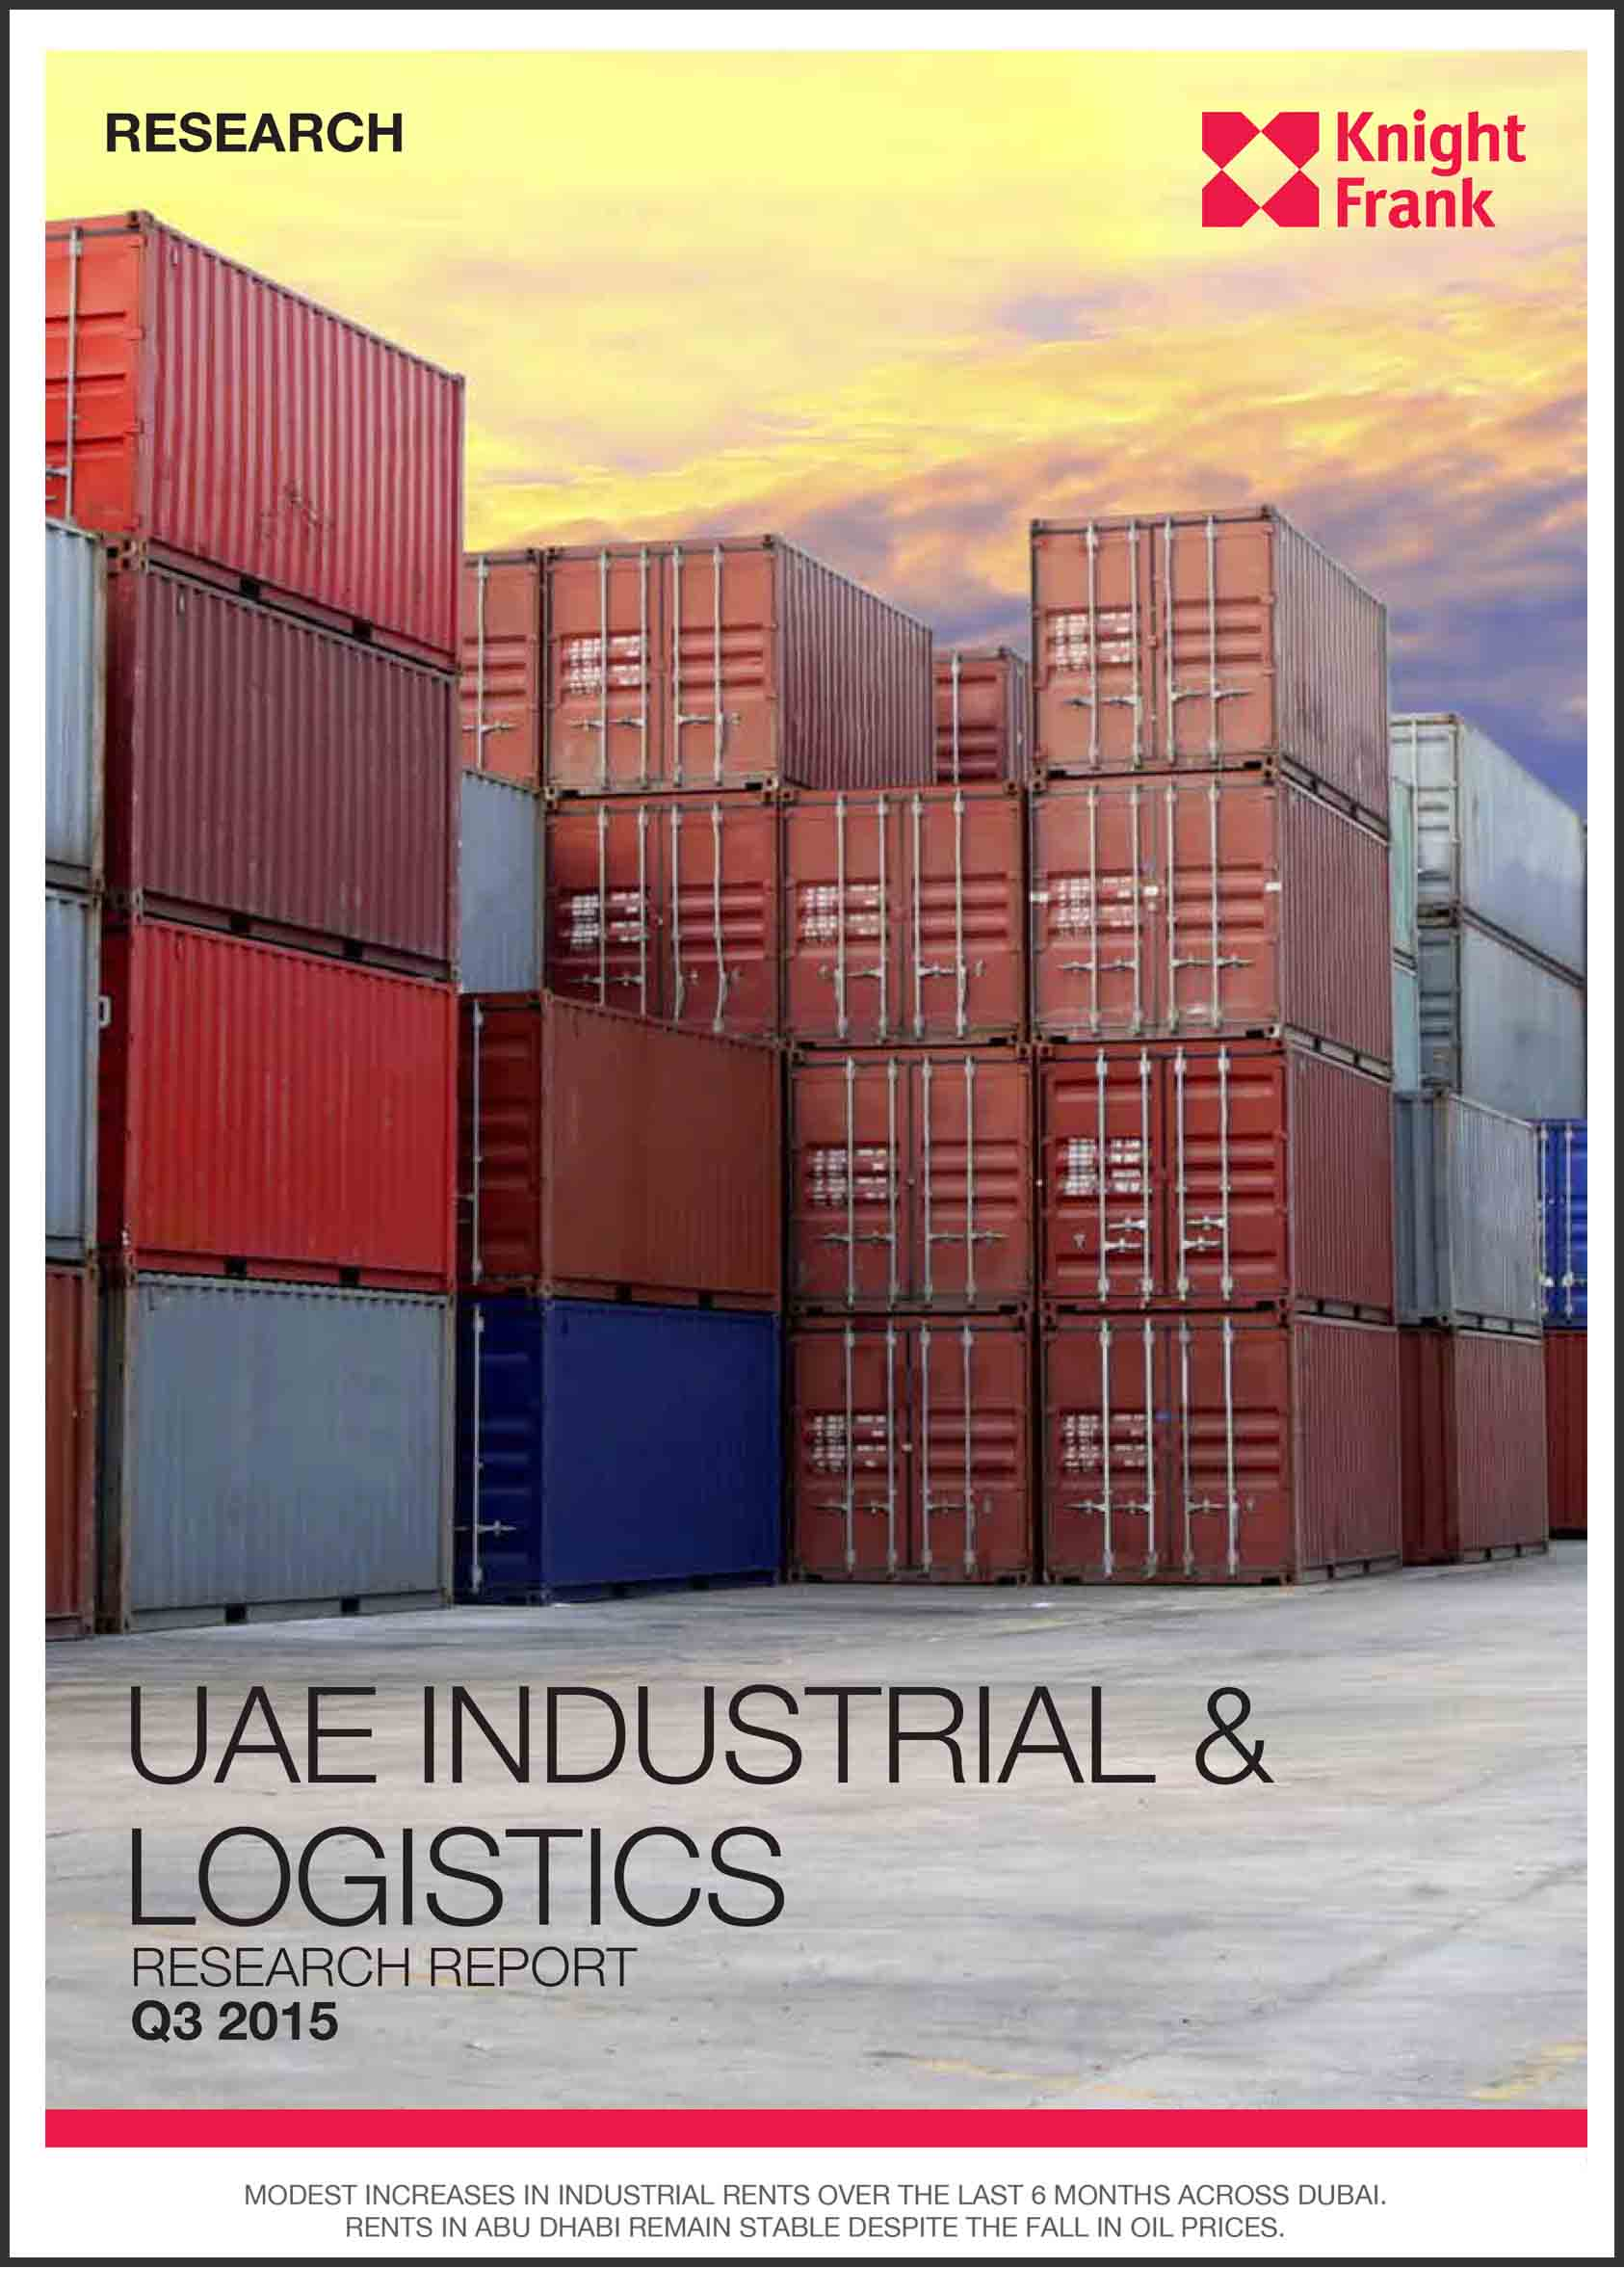 UAE Industiral & Logistics Research Report Q3 2015